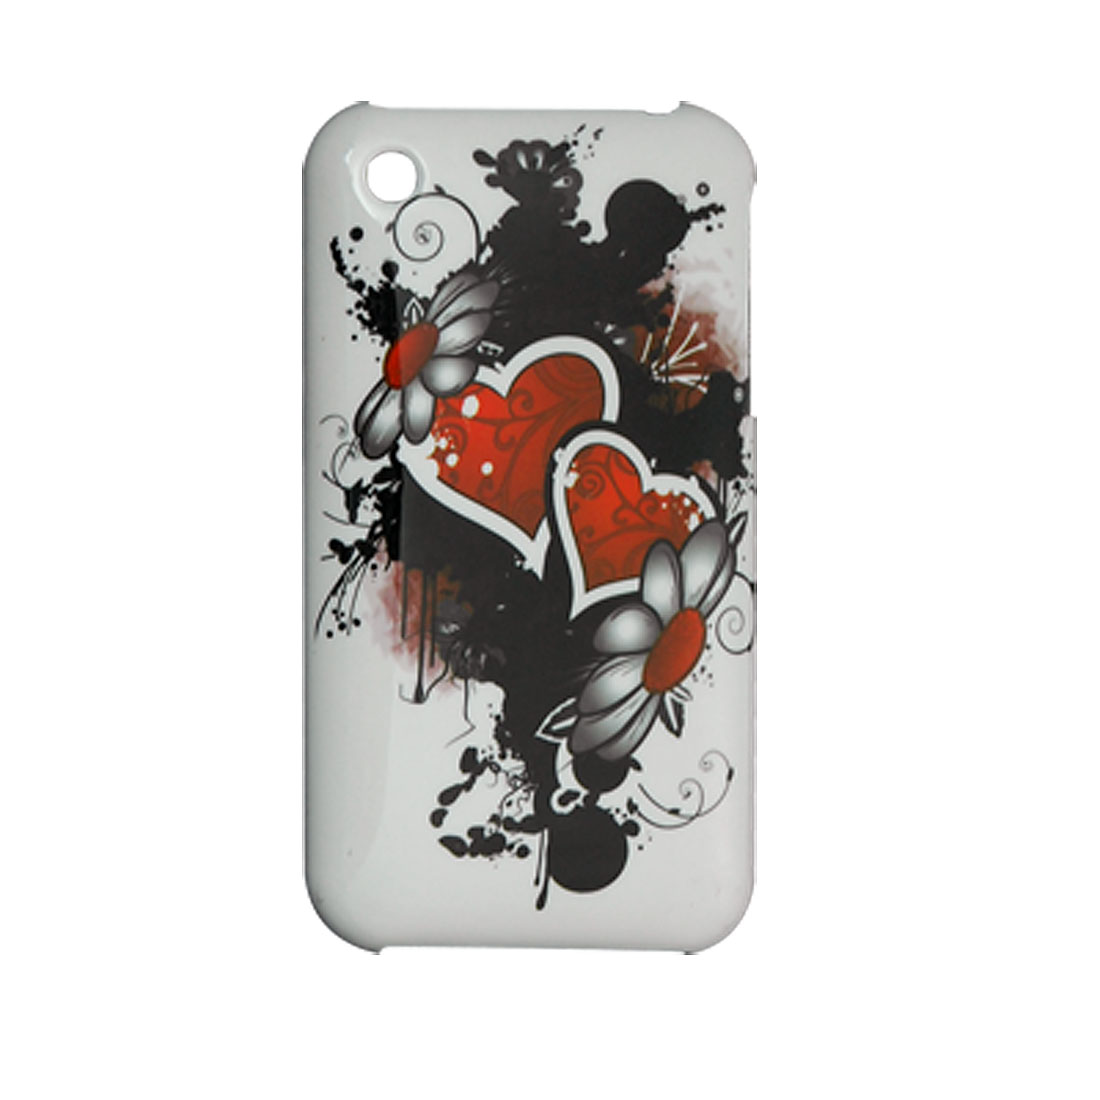 Screen Guard + Heart Printed Hard Back Cover for iPhone 3G White